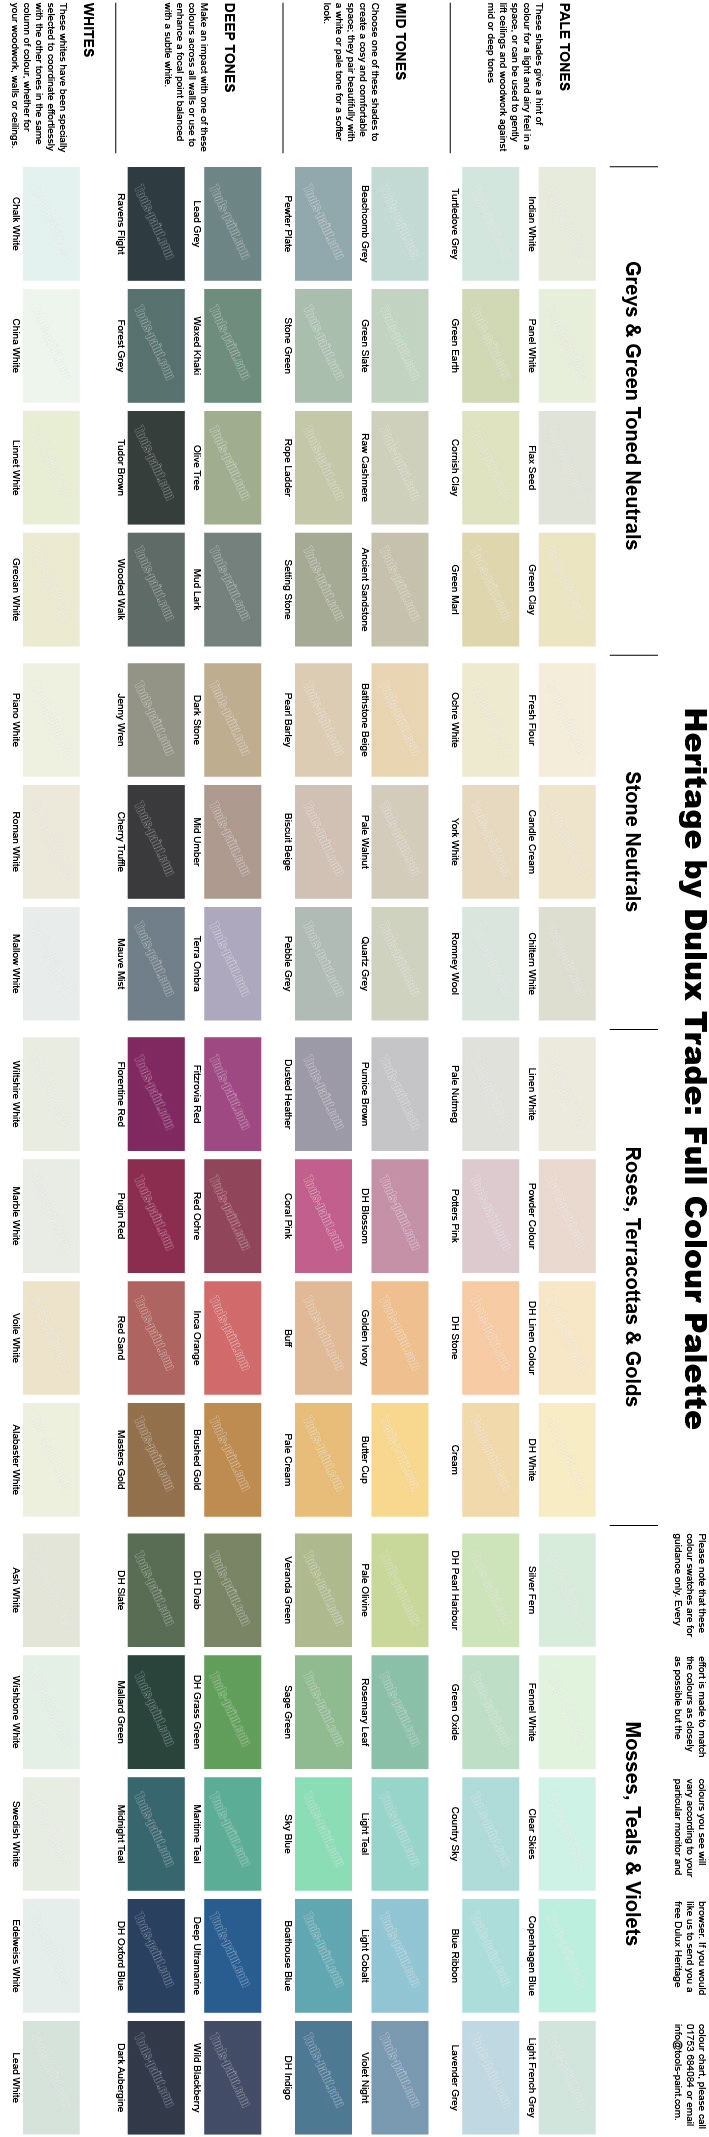 Best 25 dulux colour chart ideas on pinterest dulux for Color charts for painting walls